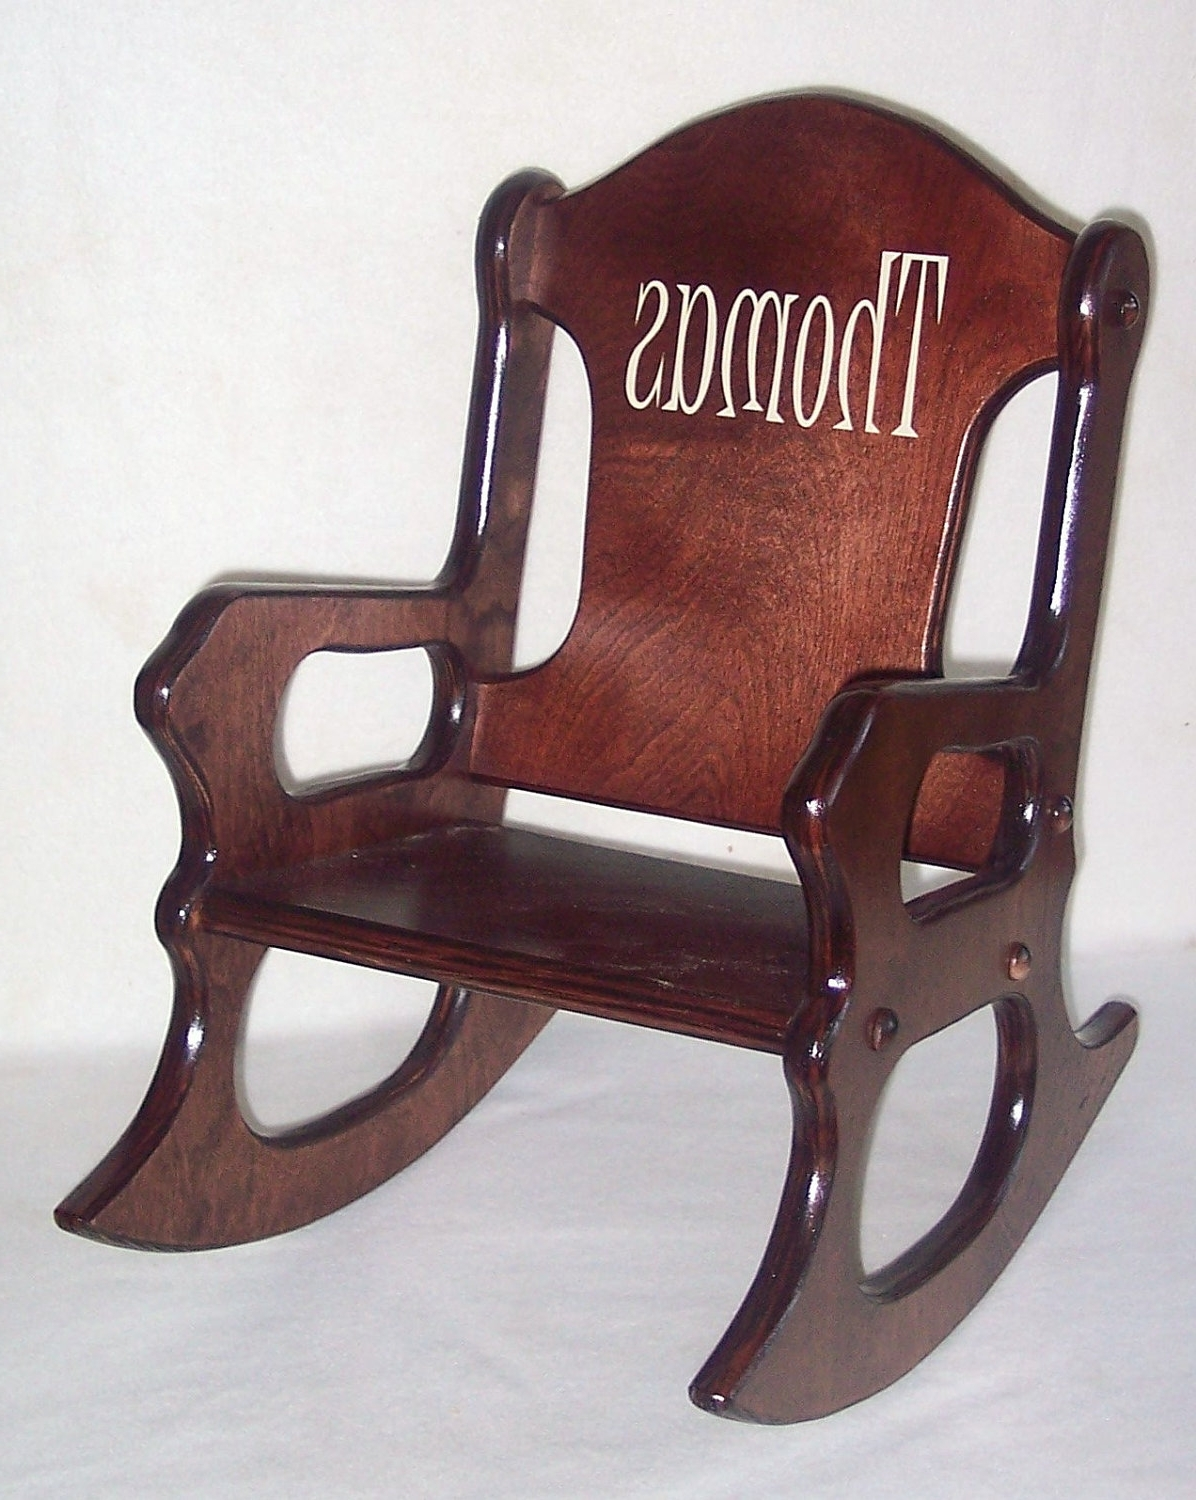 Wooden Kids Rocking Chair Personalized Cherry Finish, Kid Wood Chair Throughout Well Known Rocking Chairs For Toddlers (View 5 of 20)